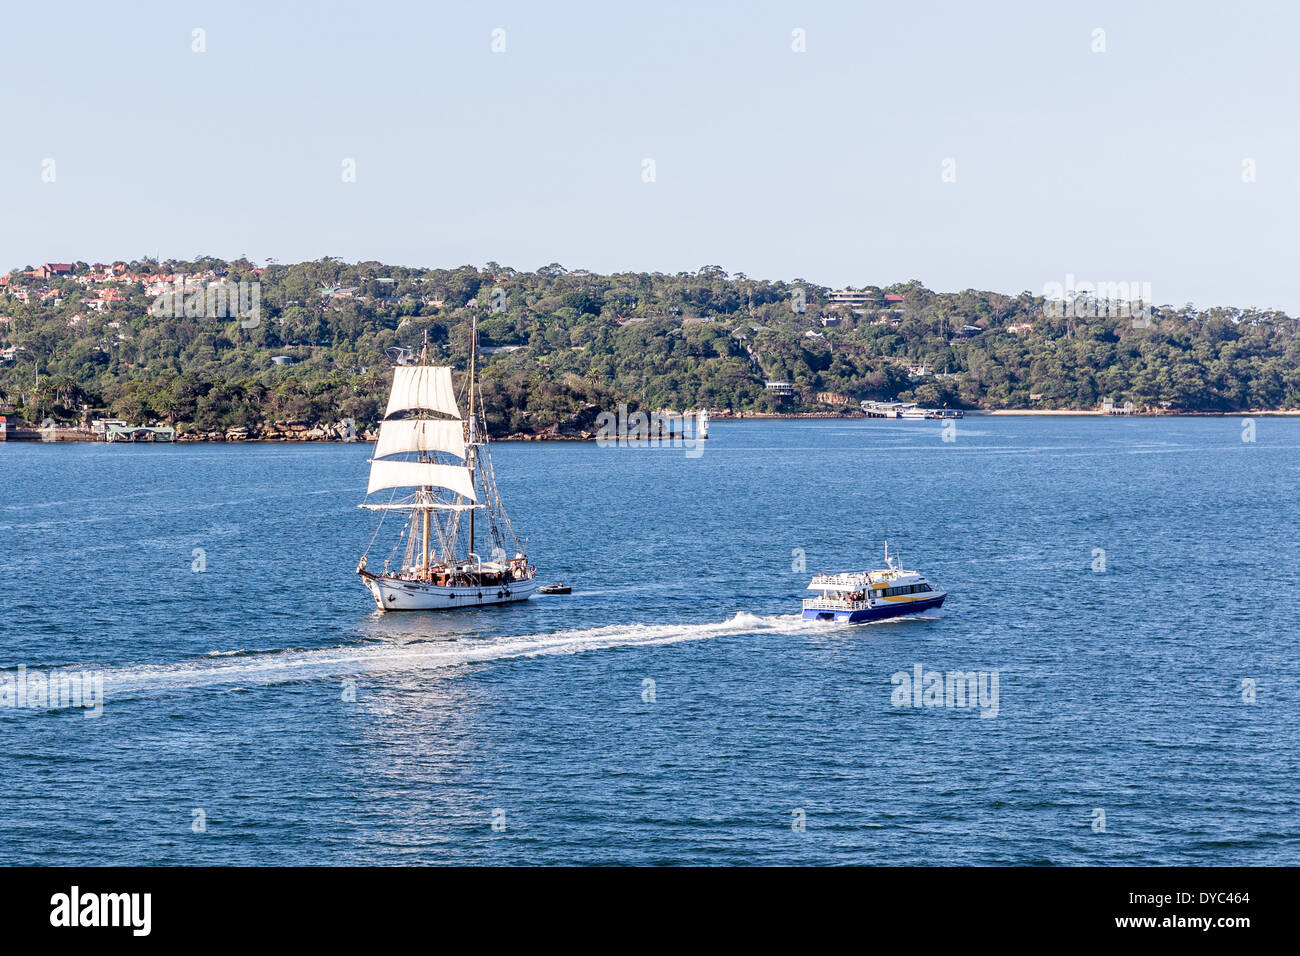 A brigantine sailing ship in Sydney Harbour - Stock Image